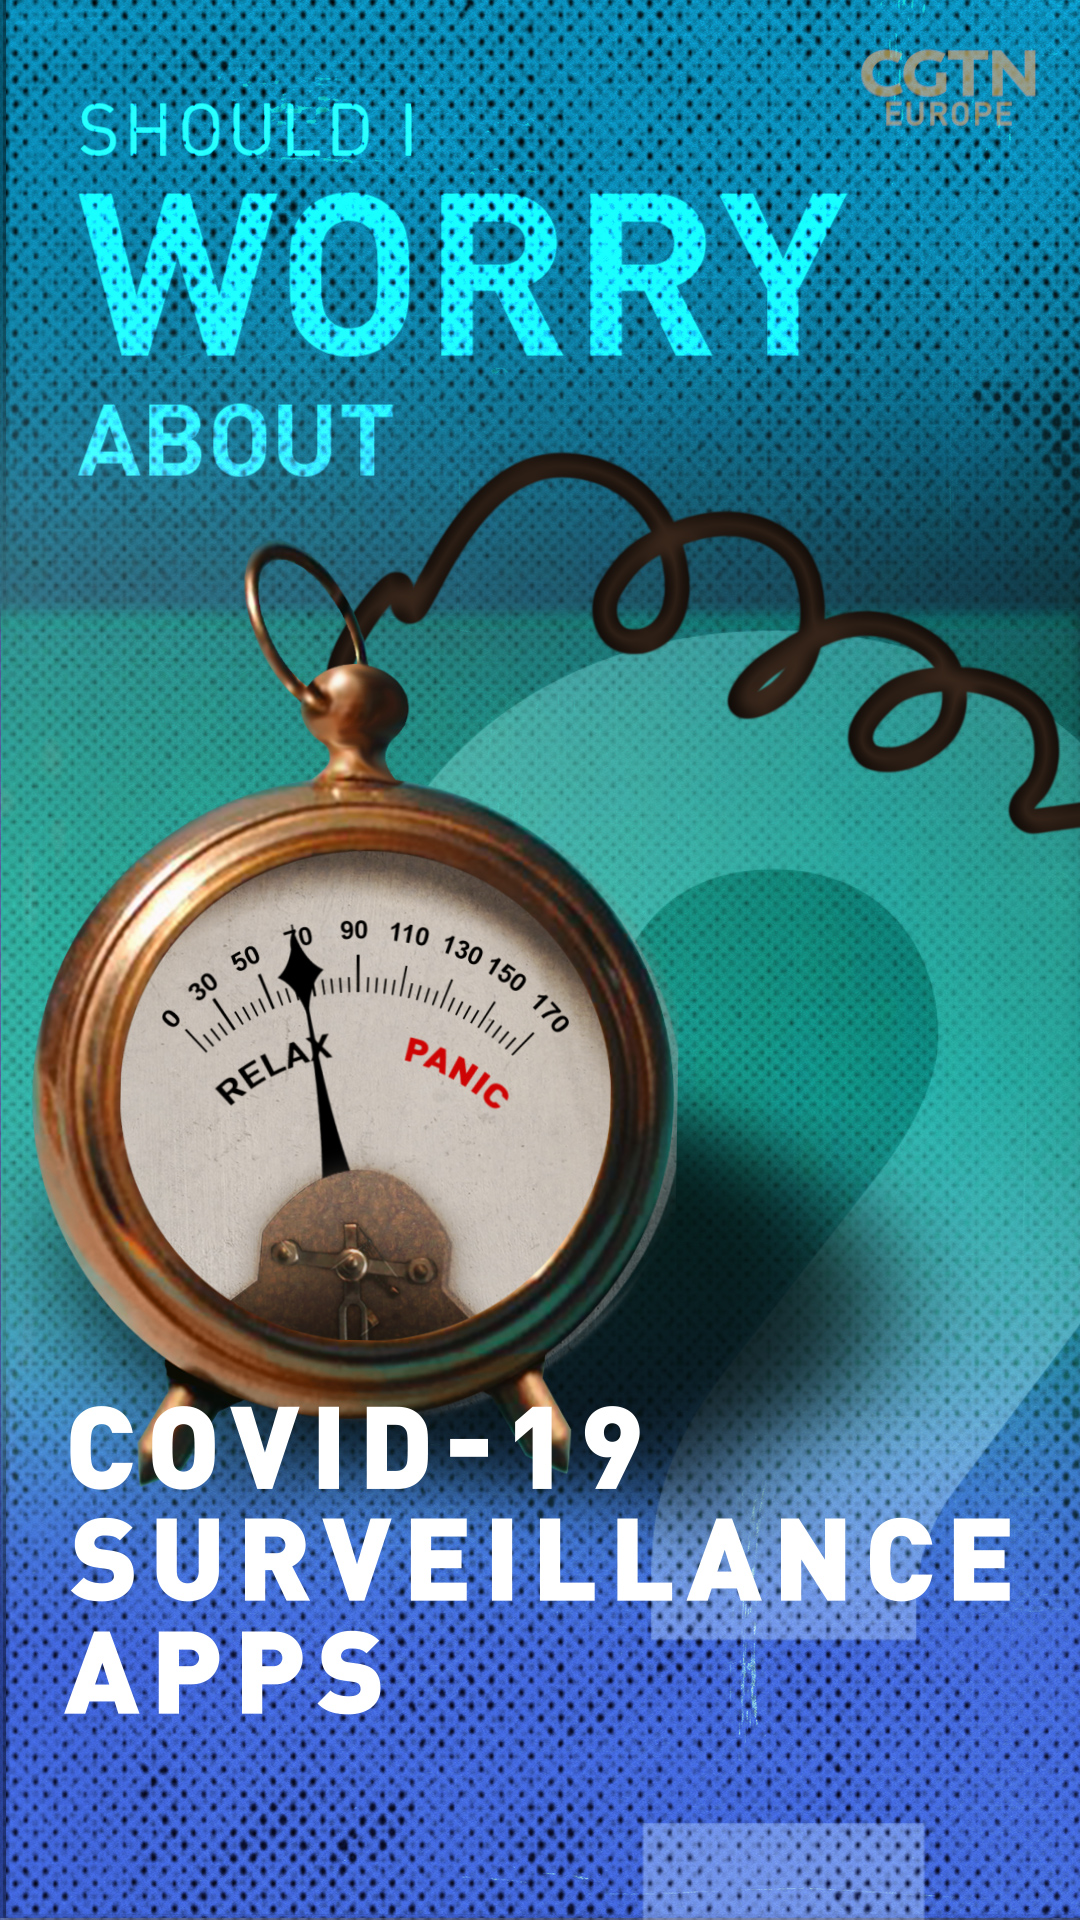 Should I worry about mass surveillance due to COVID-19?